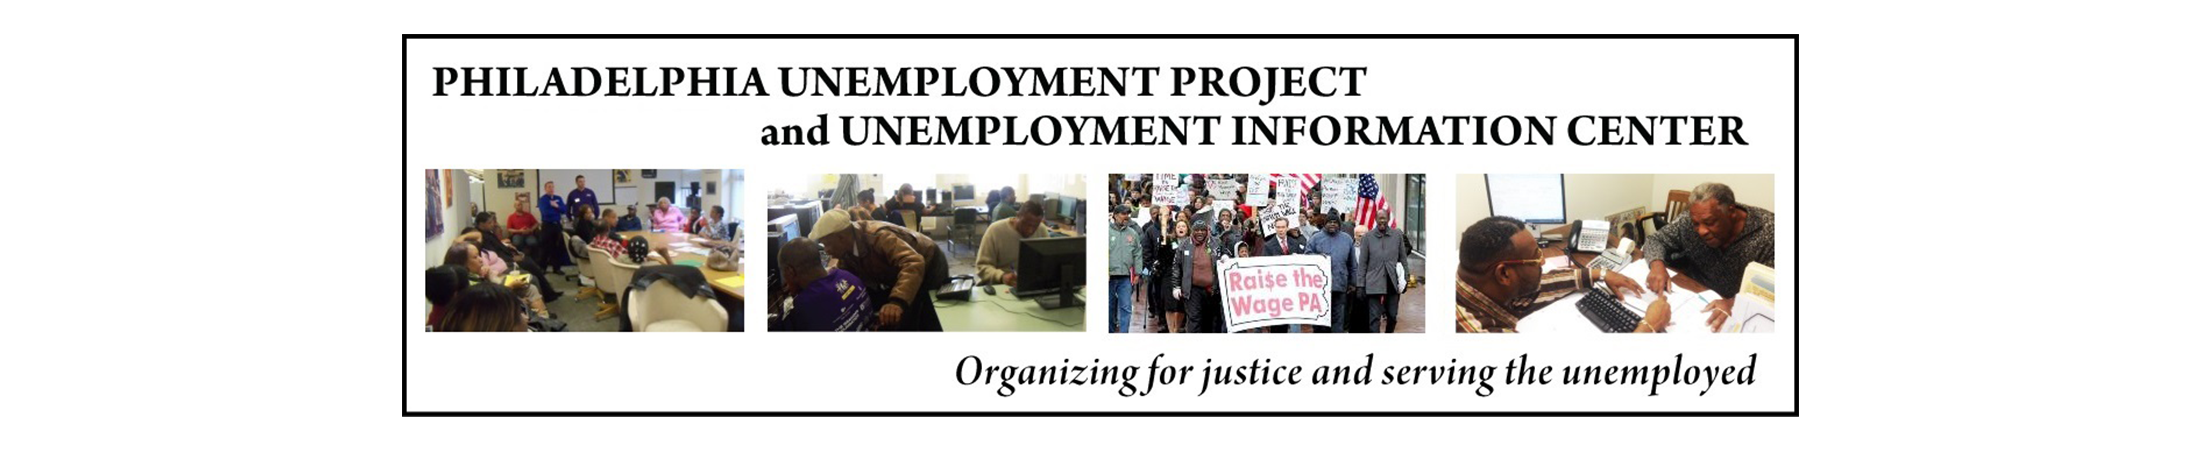 Philadelphia Unemployment Project